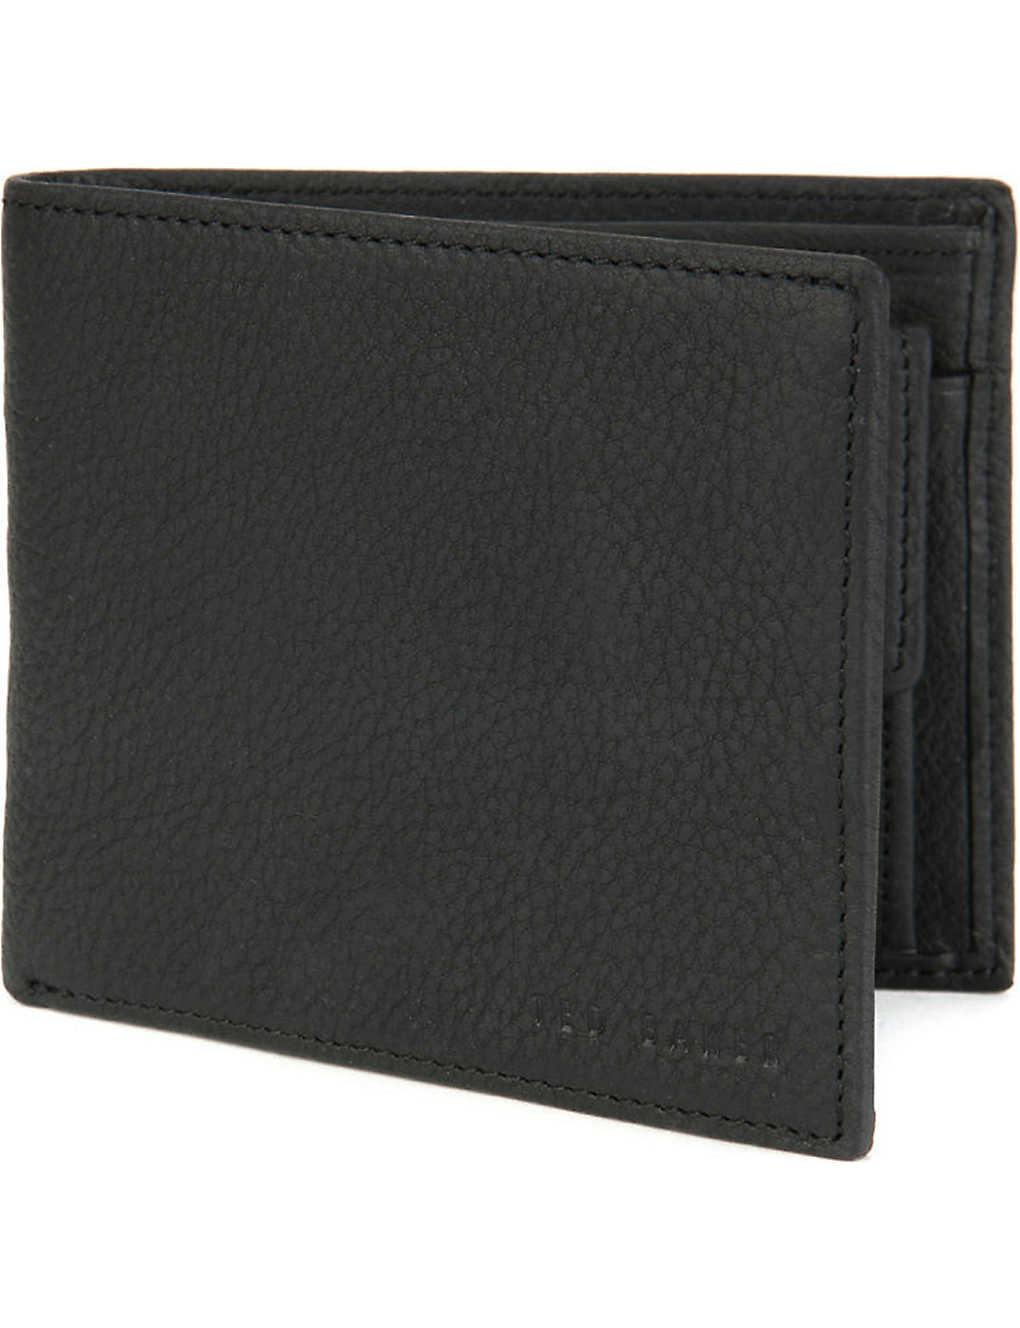 2e3a28367a6 TED BAKER - Adition leather bifold wallet | Selfridges.com